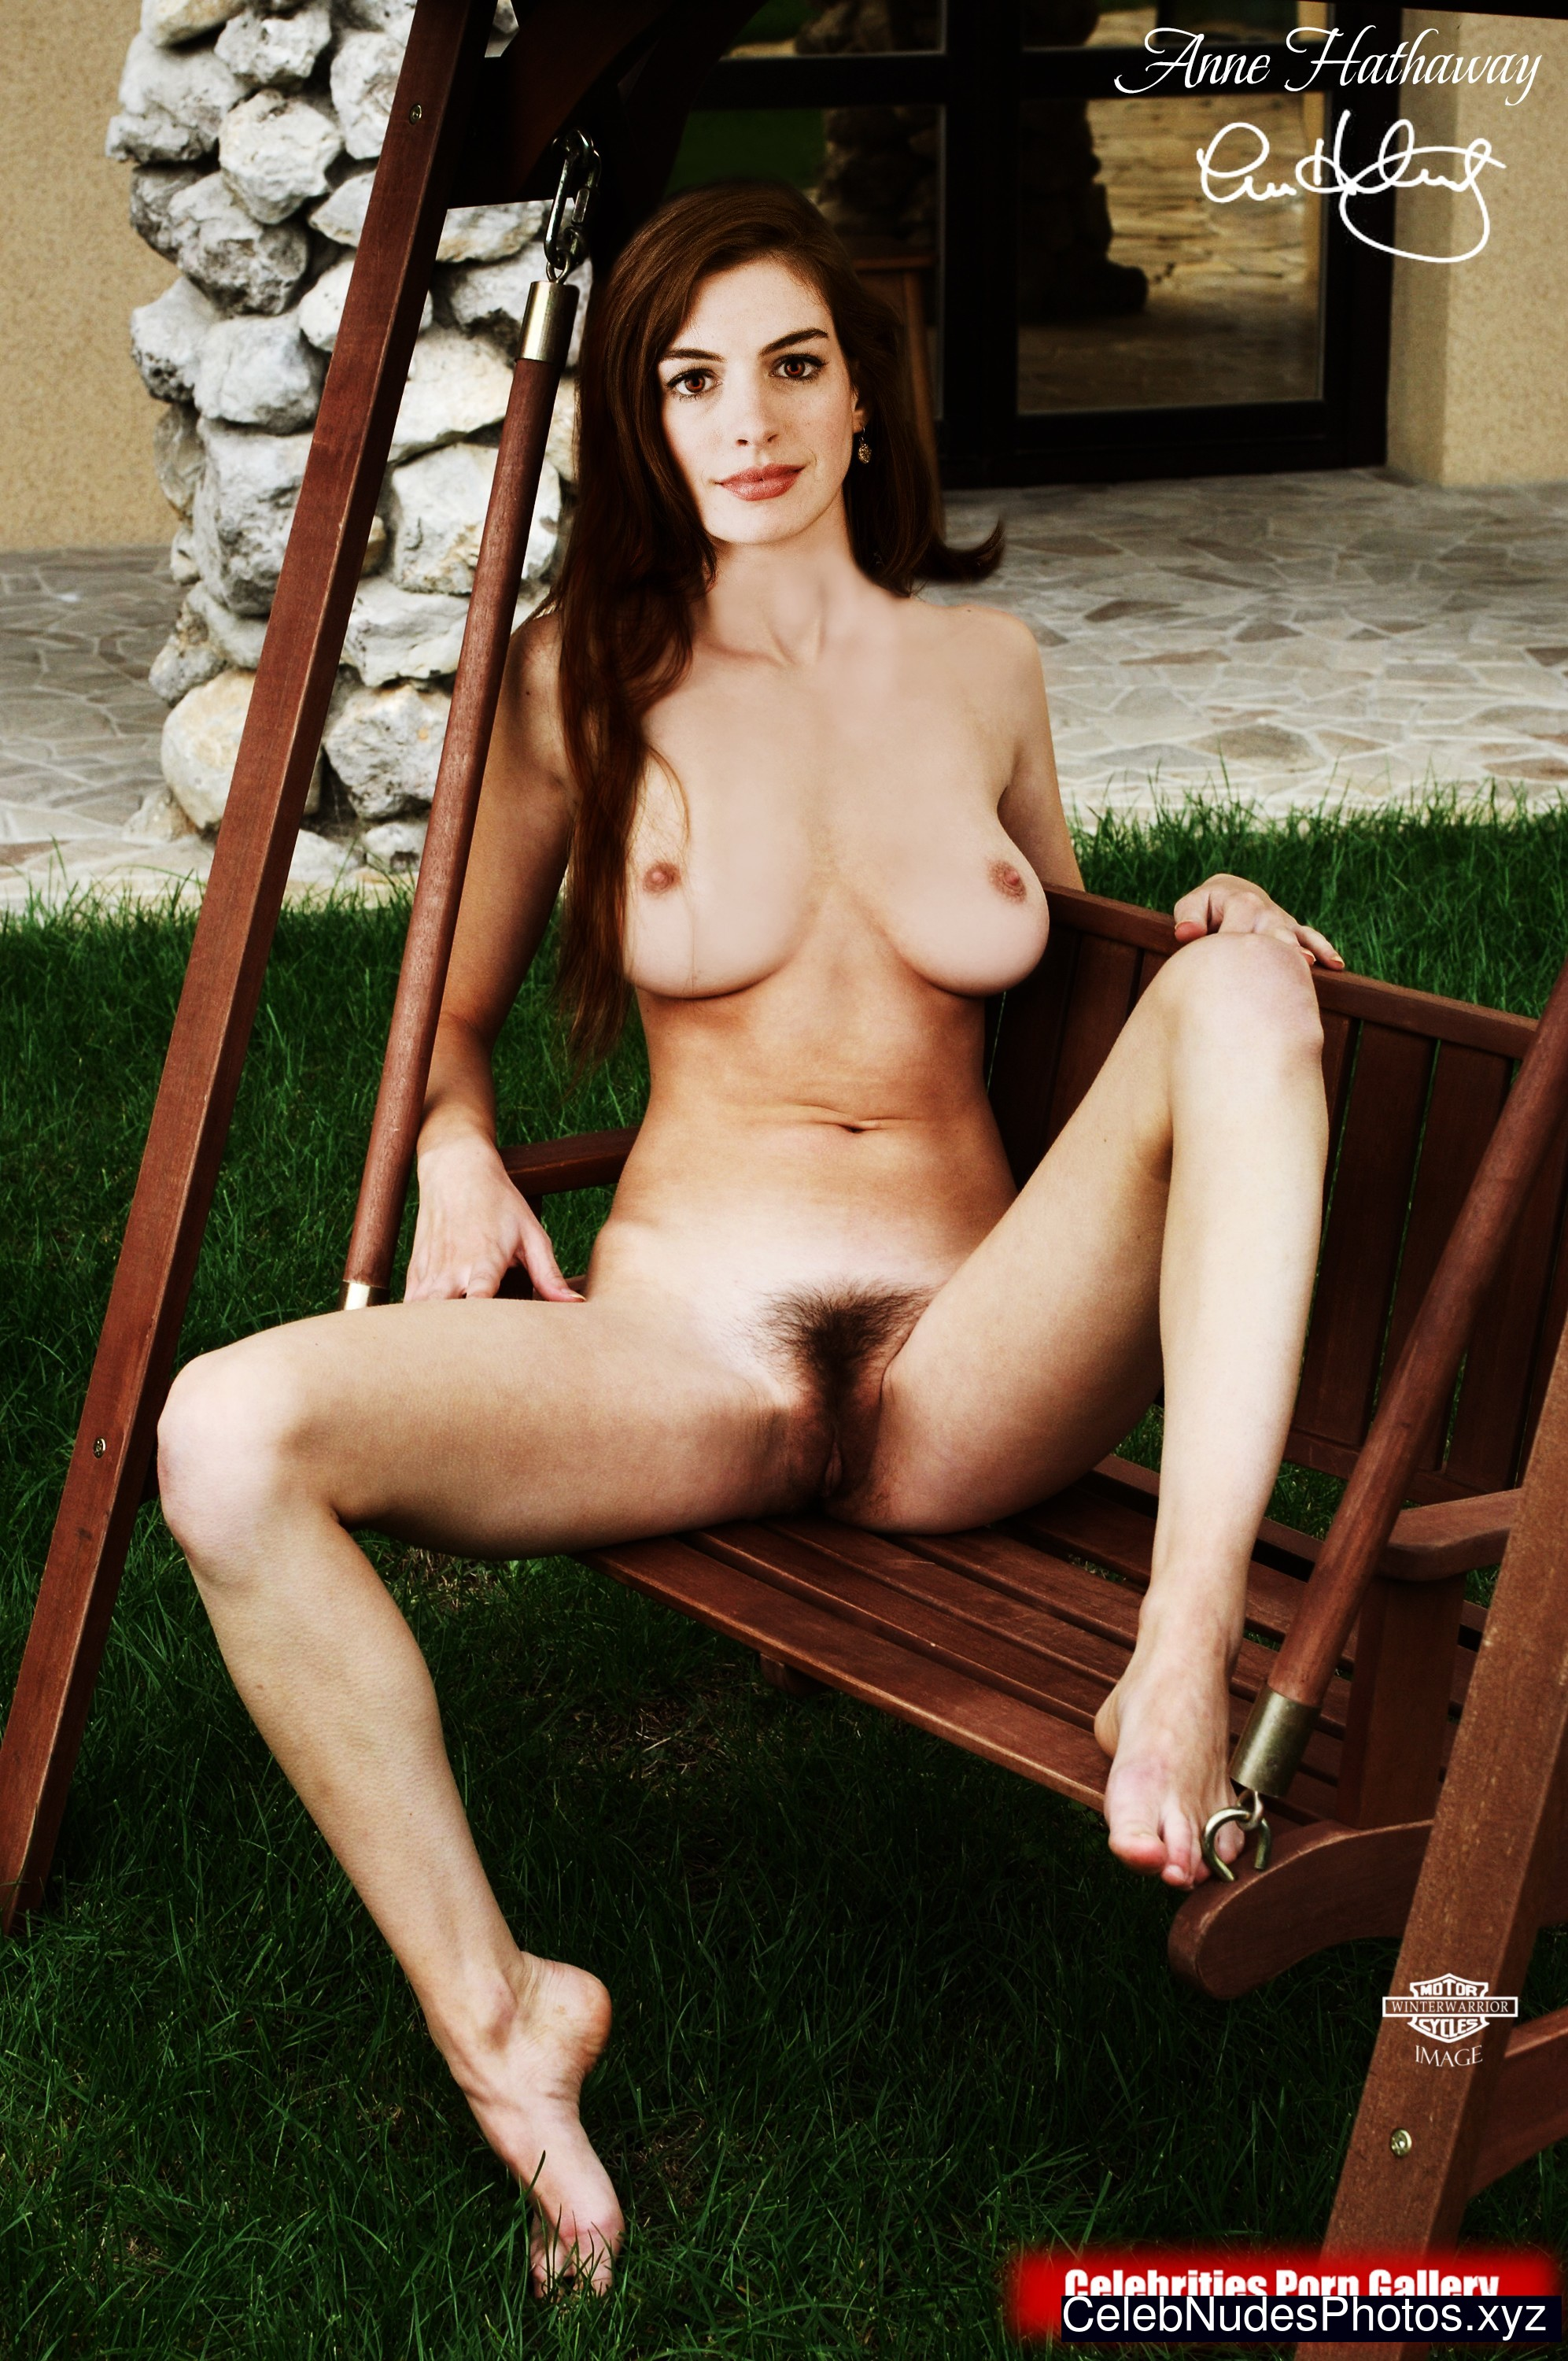 Anne Hathaway nude celebrity pics